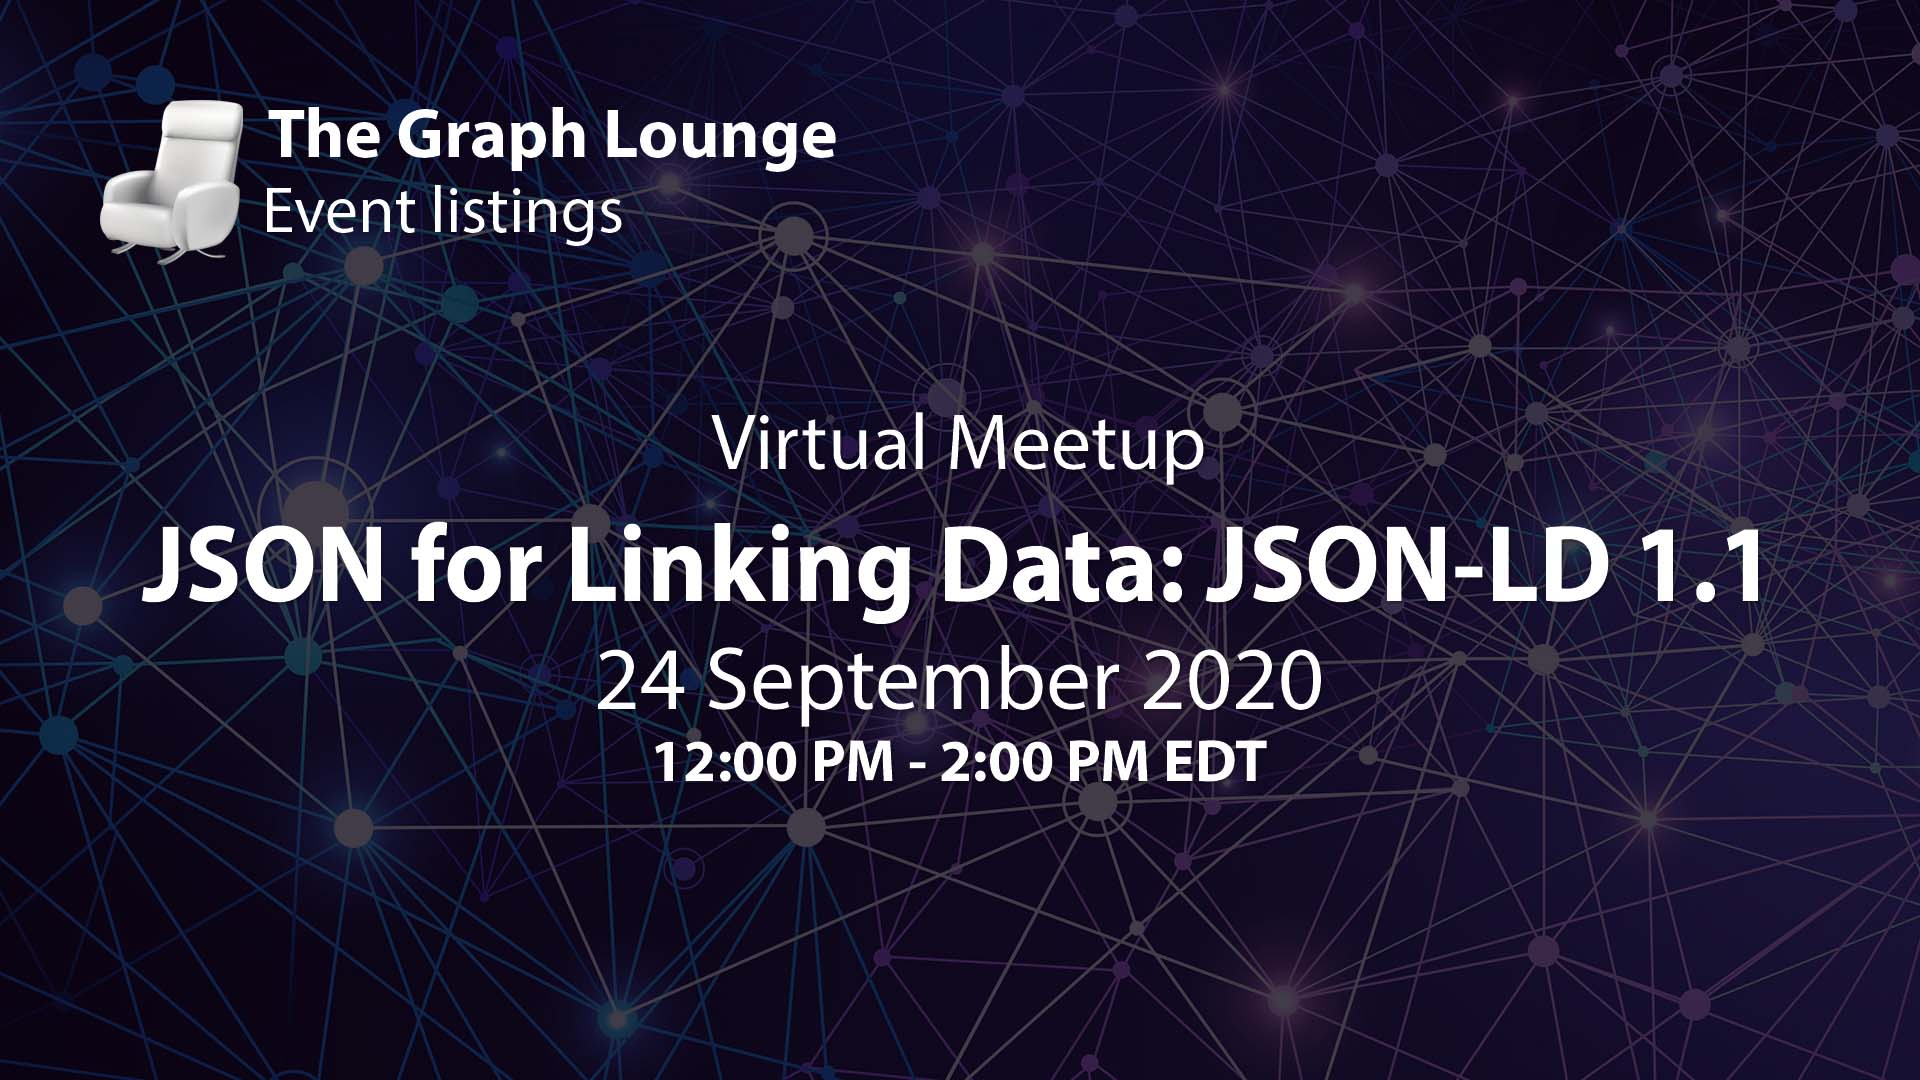 JSON for Linking Data: JSON-LD 1.1